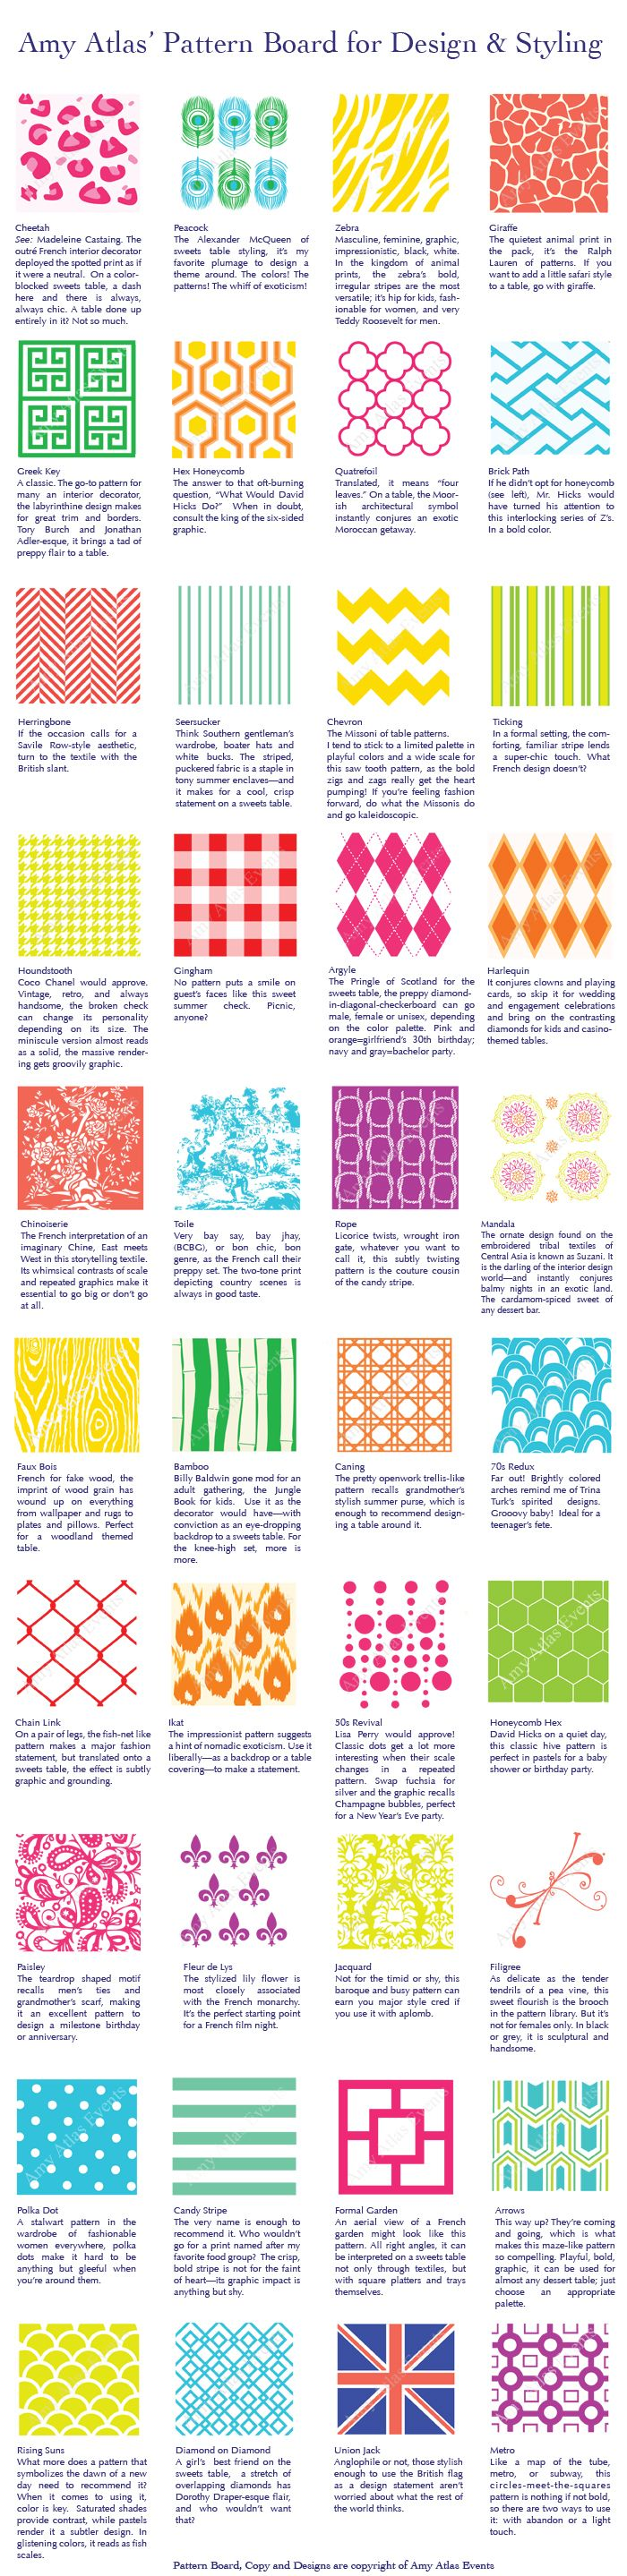 pattern board for design and styling